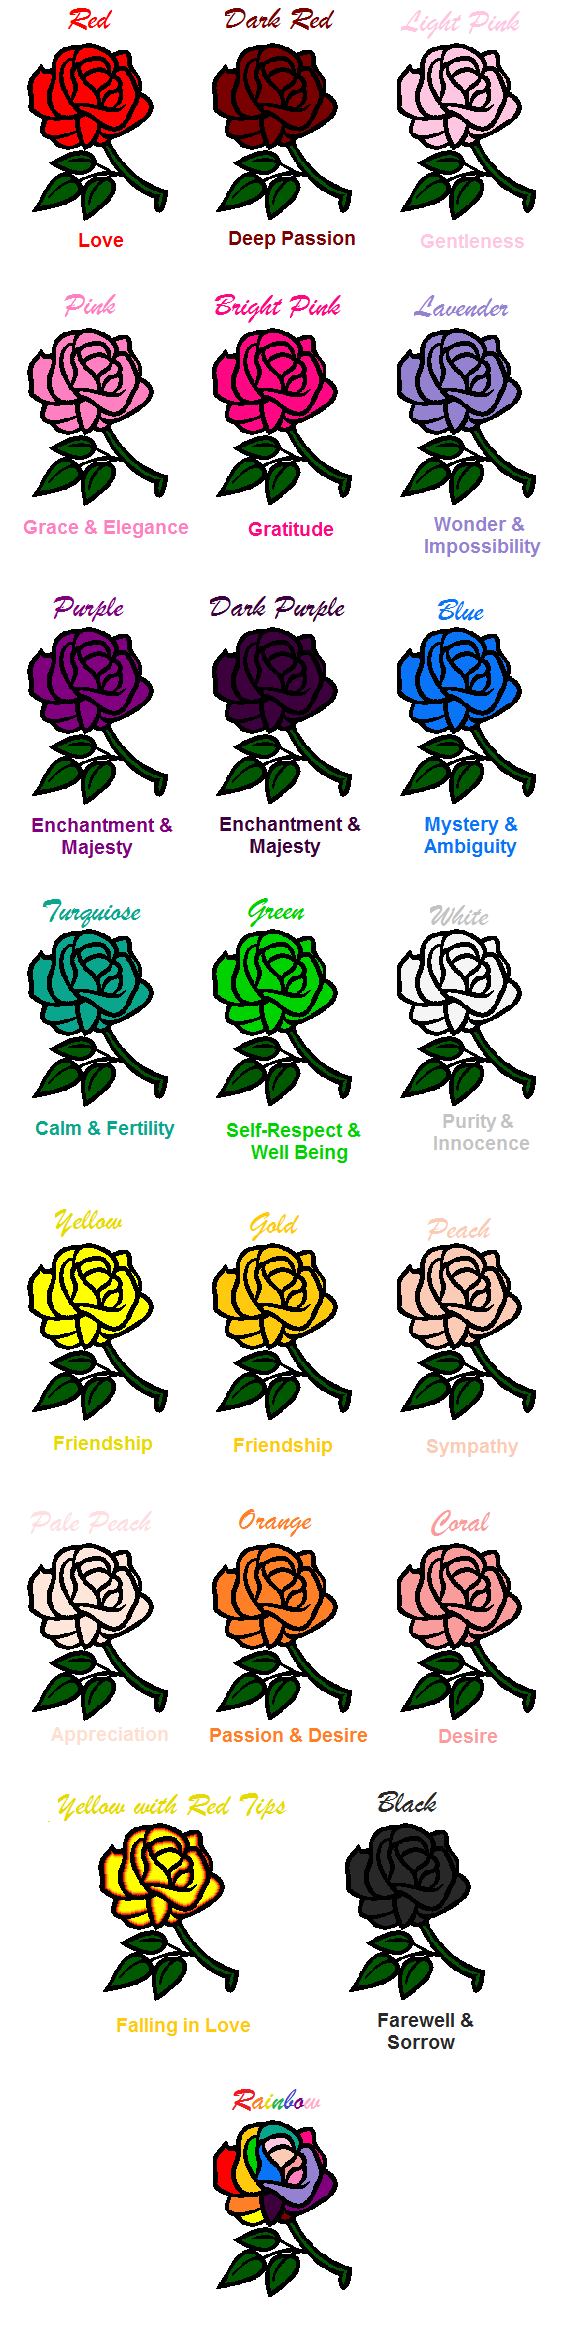 Blue rose symbolism choice image symbol and sign ideas what does roses symbolize images symbol and sign ideas the meaning of rose colors chart images buycottarizona